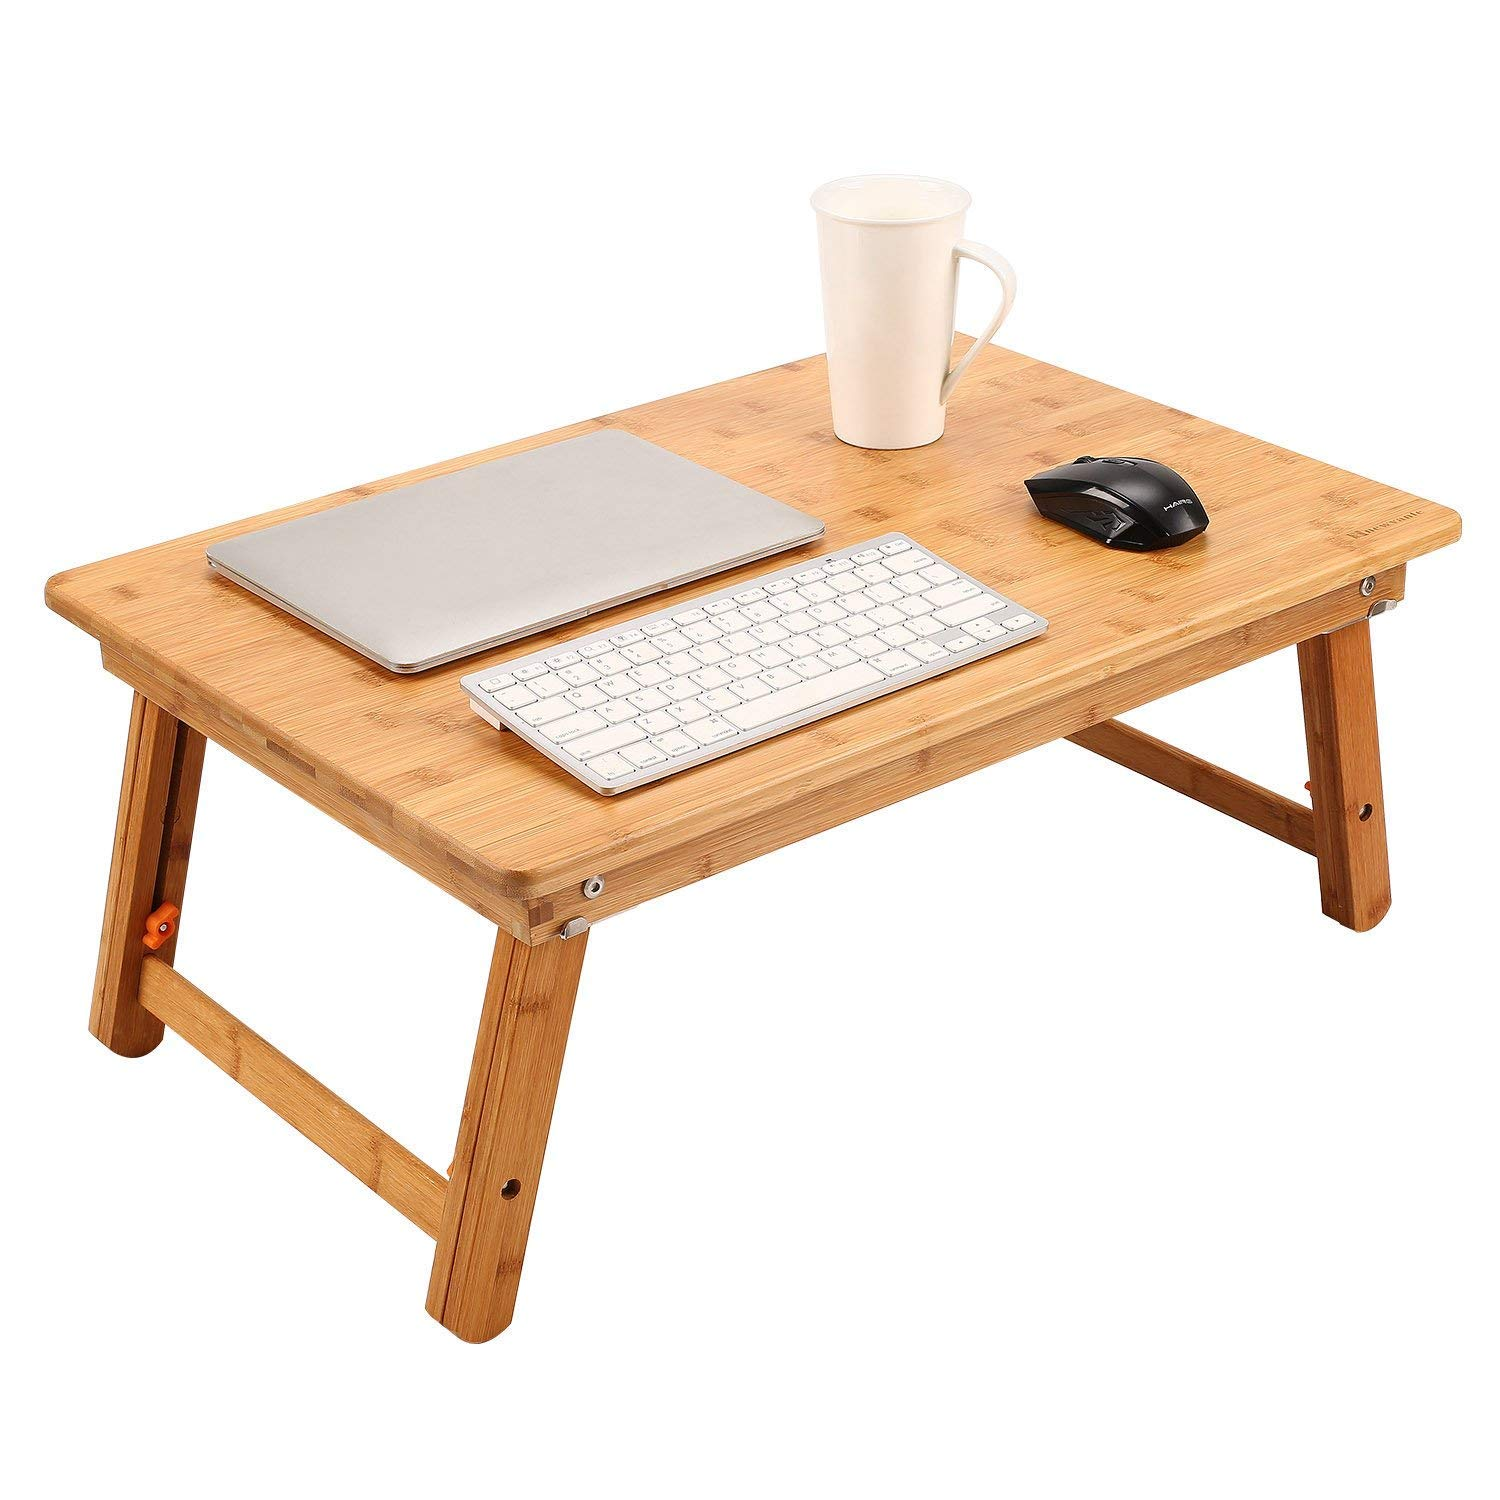 Large Size Lap Desk NNEWVANTE Foldable Laptop Table, Coffee/TV Desk 100% Bamboo Breakfast Serving Tray Gaming Writing Support up to 18in Laptop, 26x17.7in